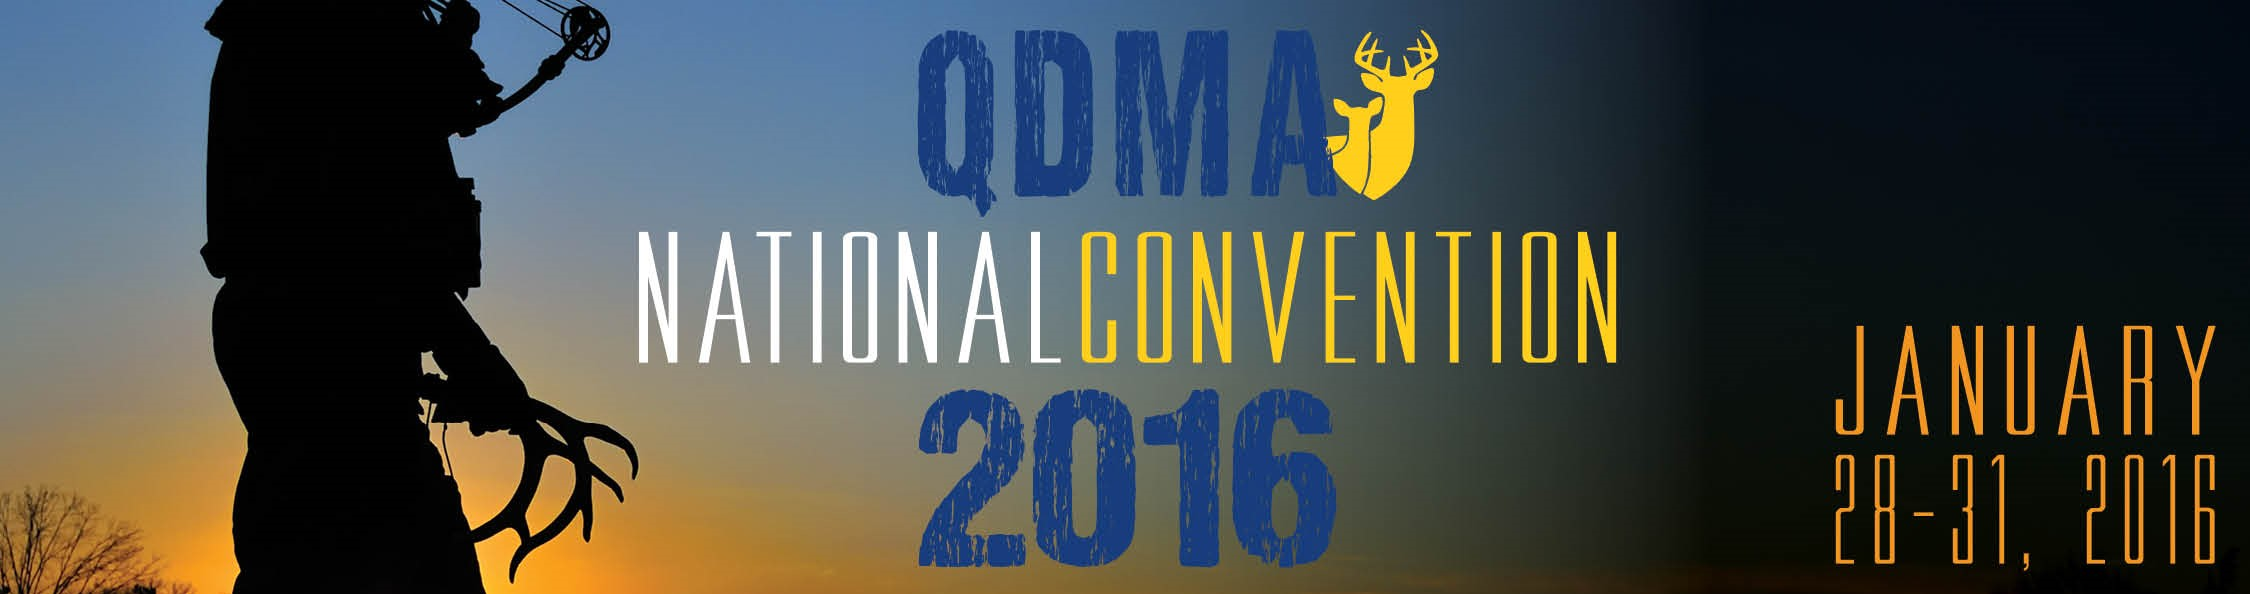 QDMA National Convention 2016